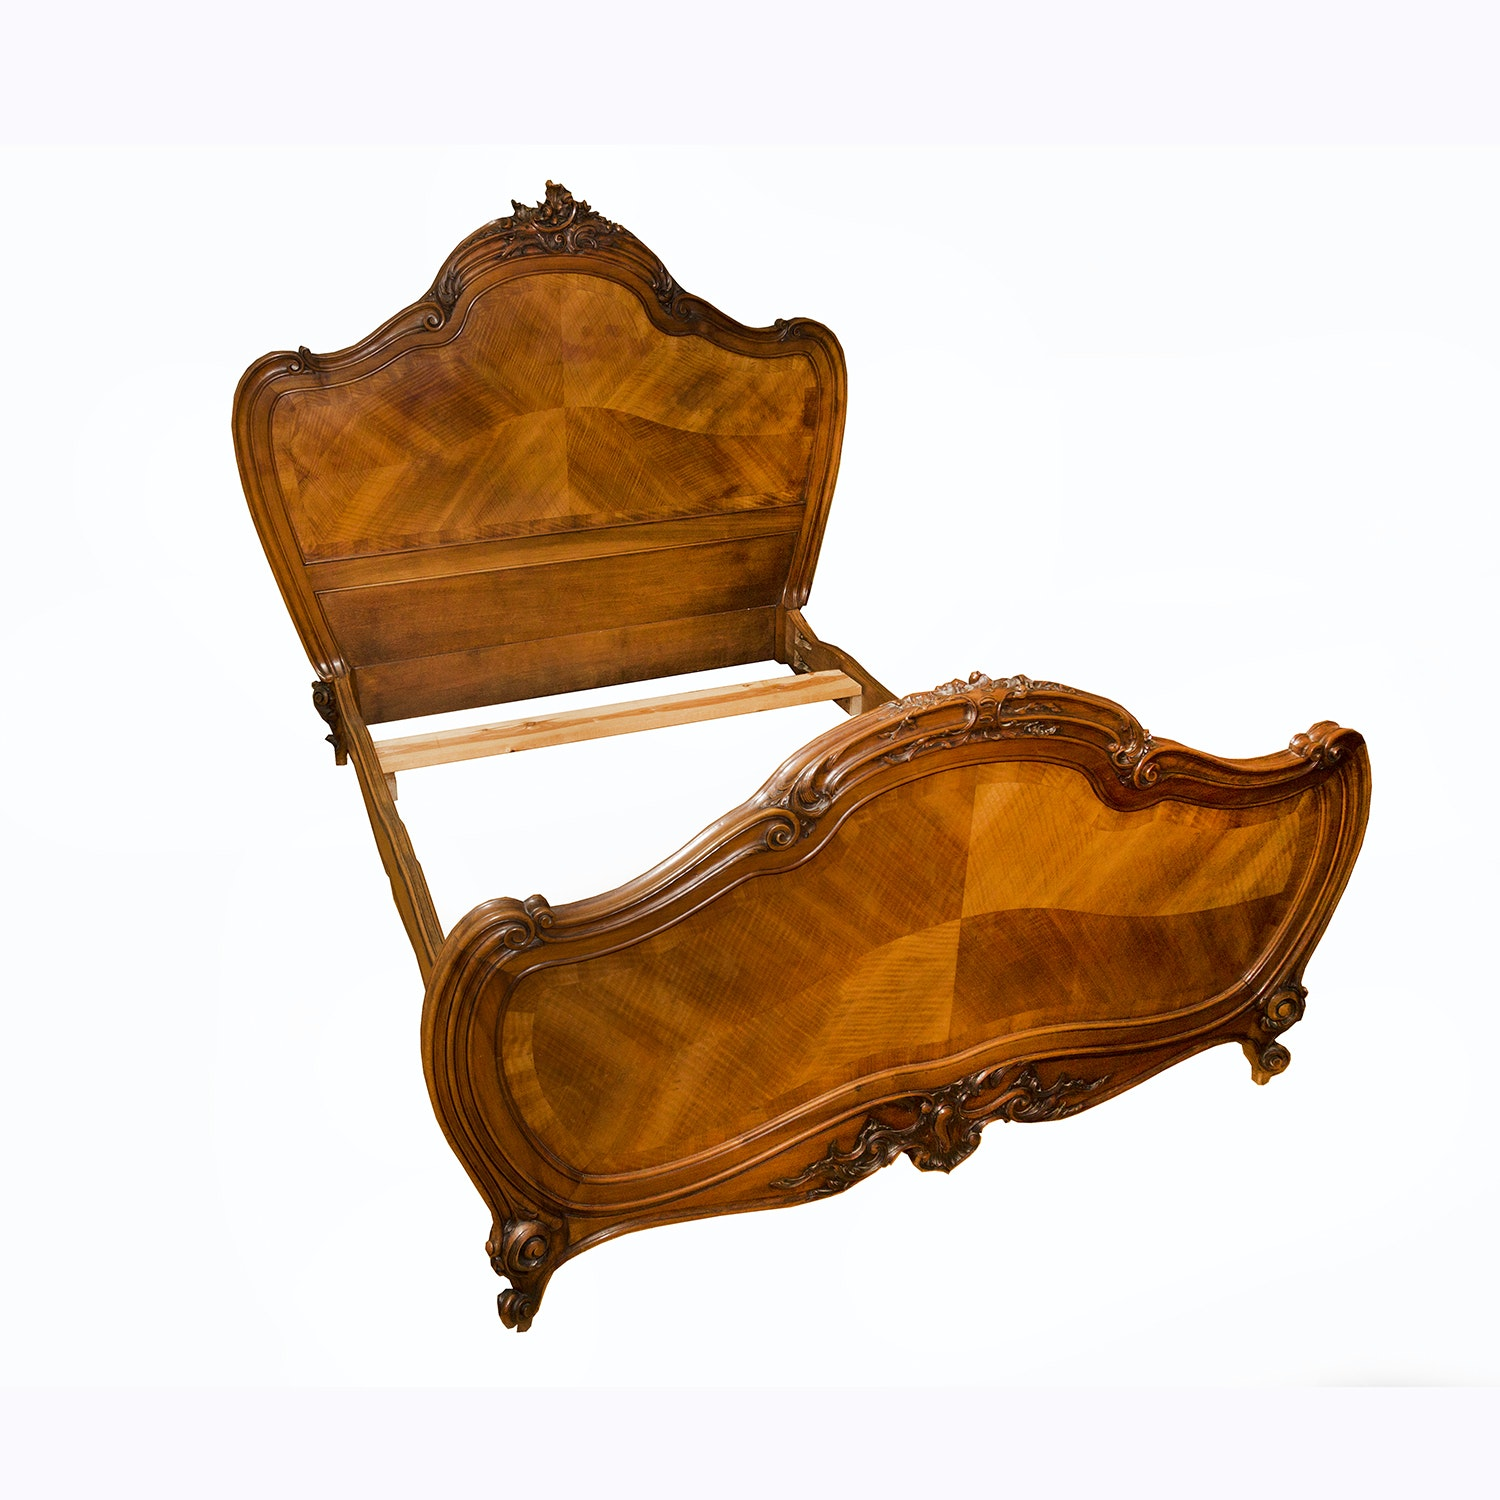 Rococo Revival Style Walnut Full-Size Bed